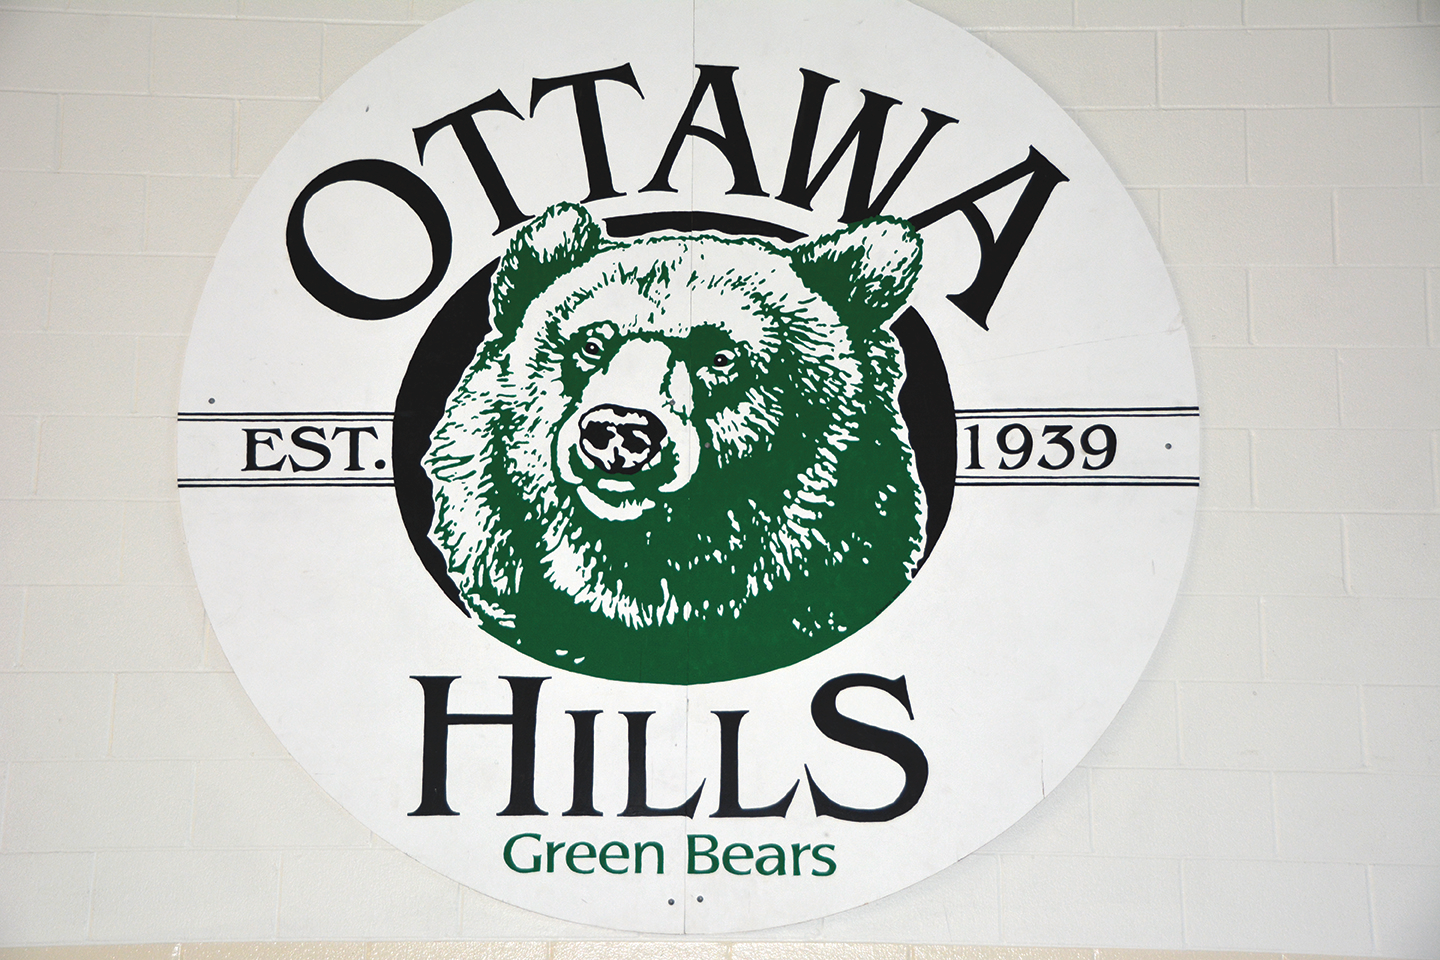 Picture of Greenbear Sign in the Gym